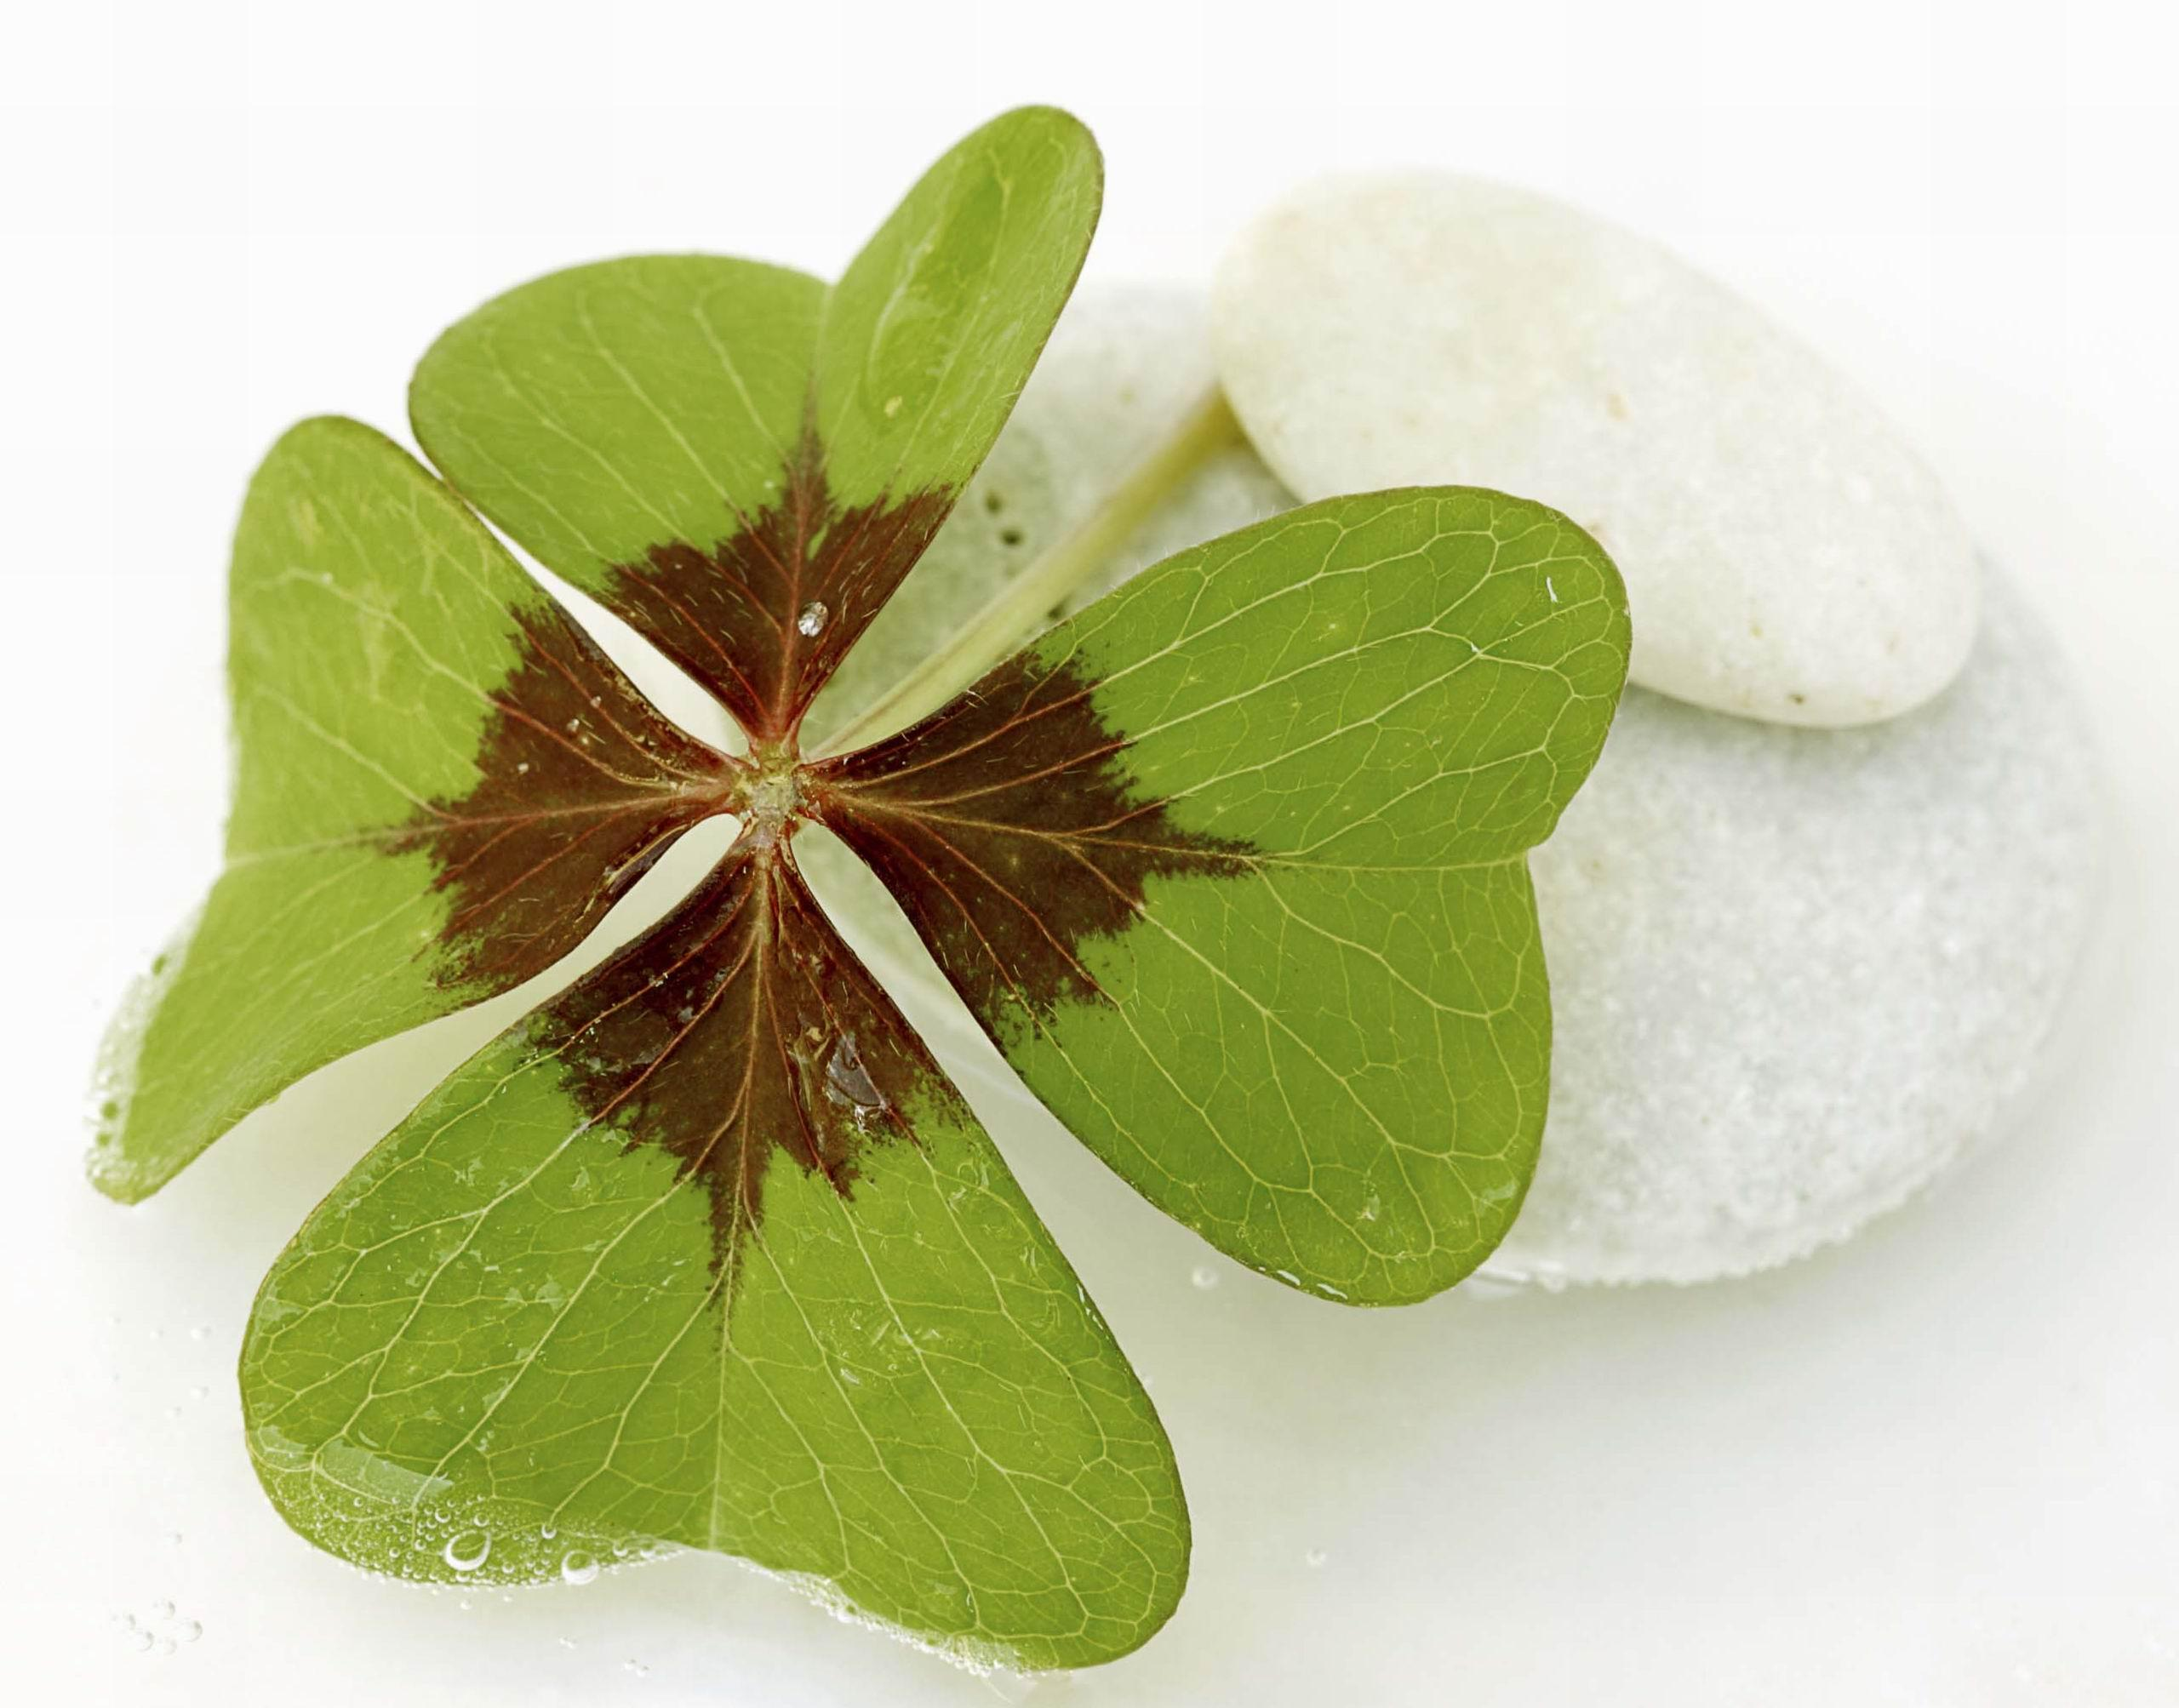 Four leaf clover, St. Patricks Day, Holiday